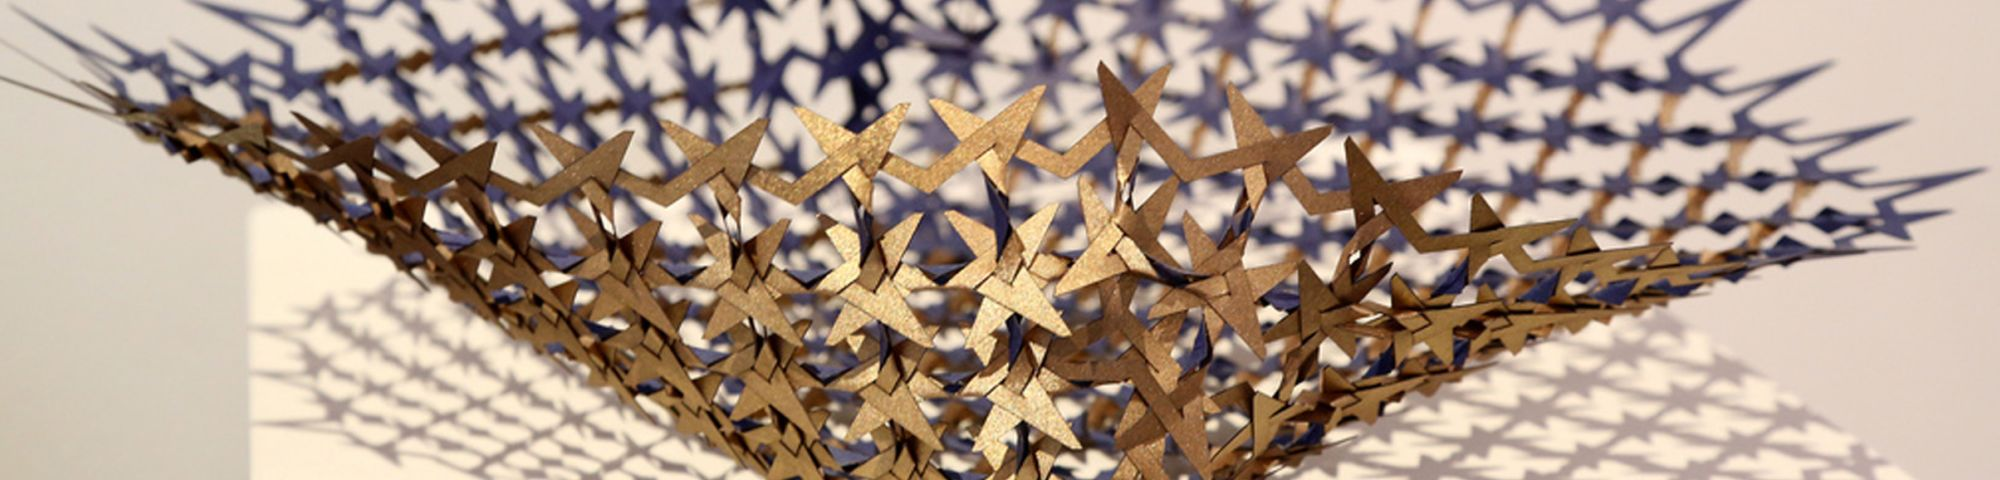 Close-up shot of a bowl made-up of metal stars